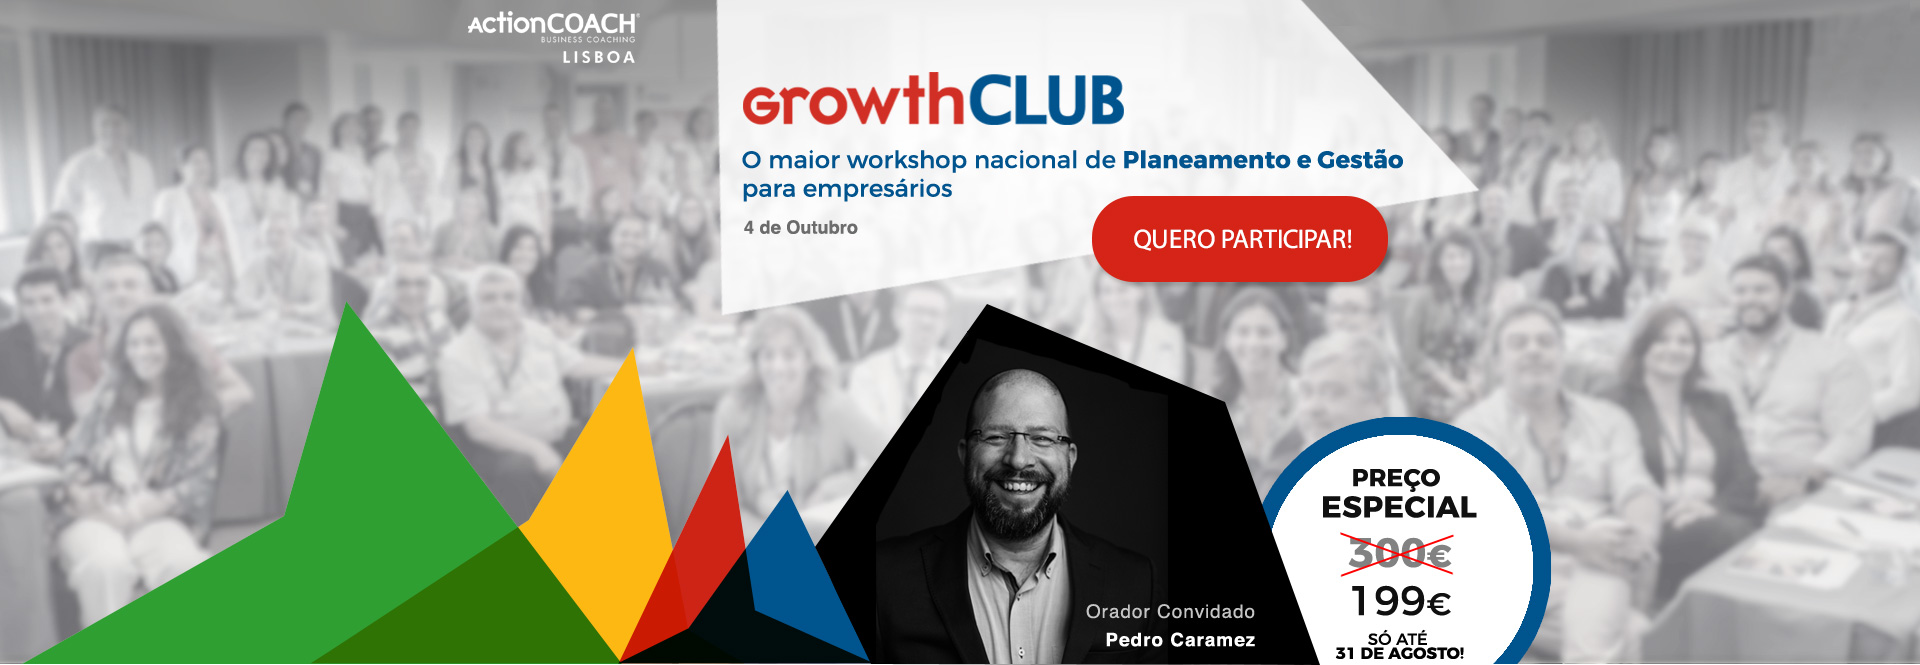 GrowthCLUB-header-text